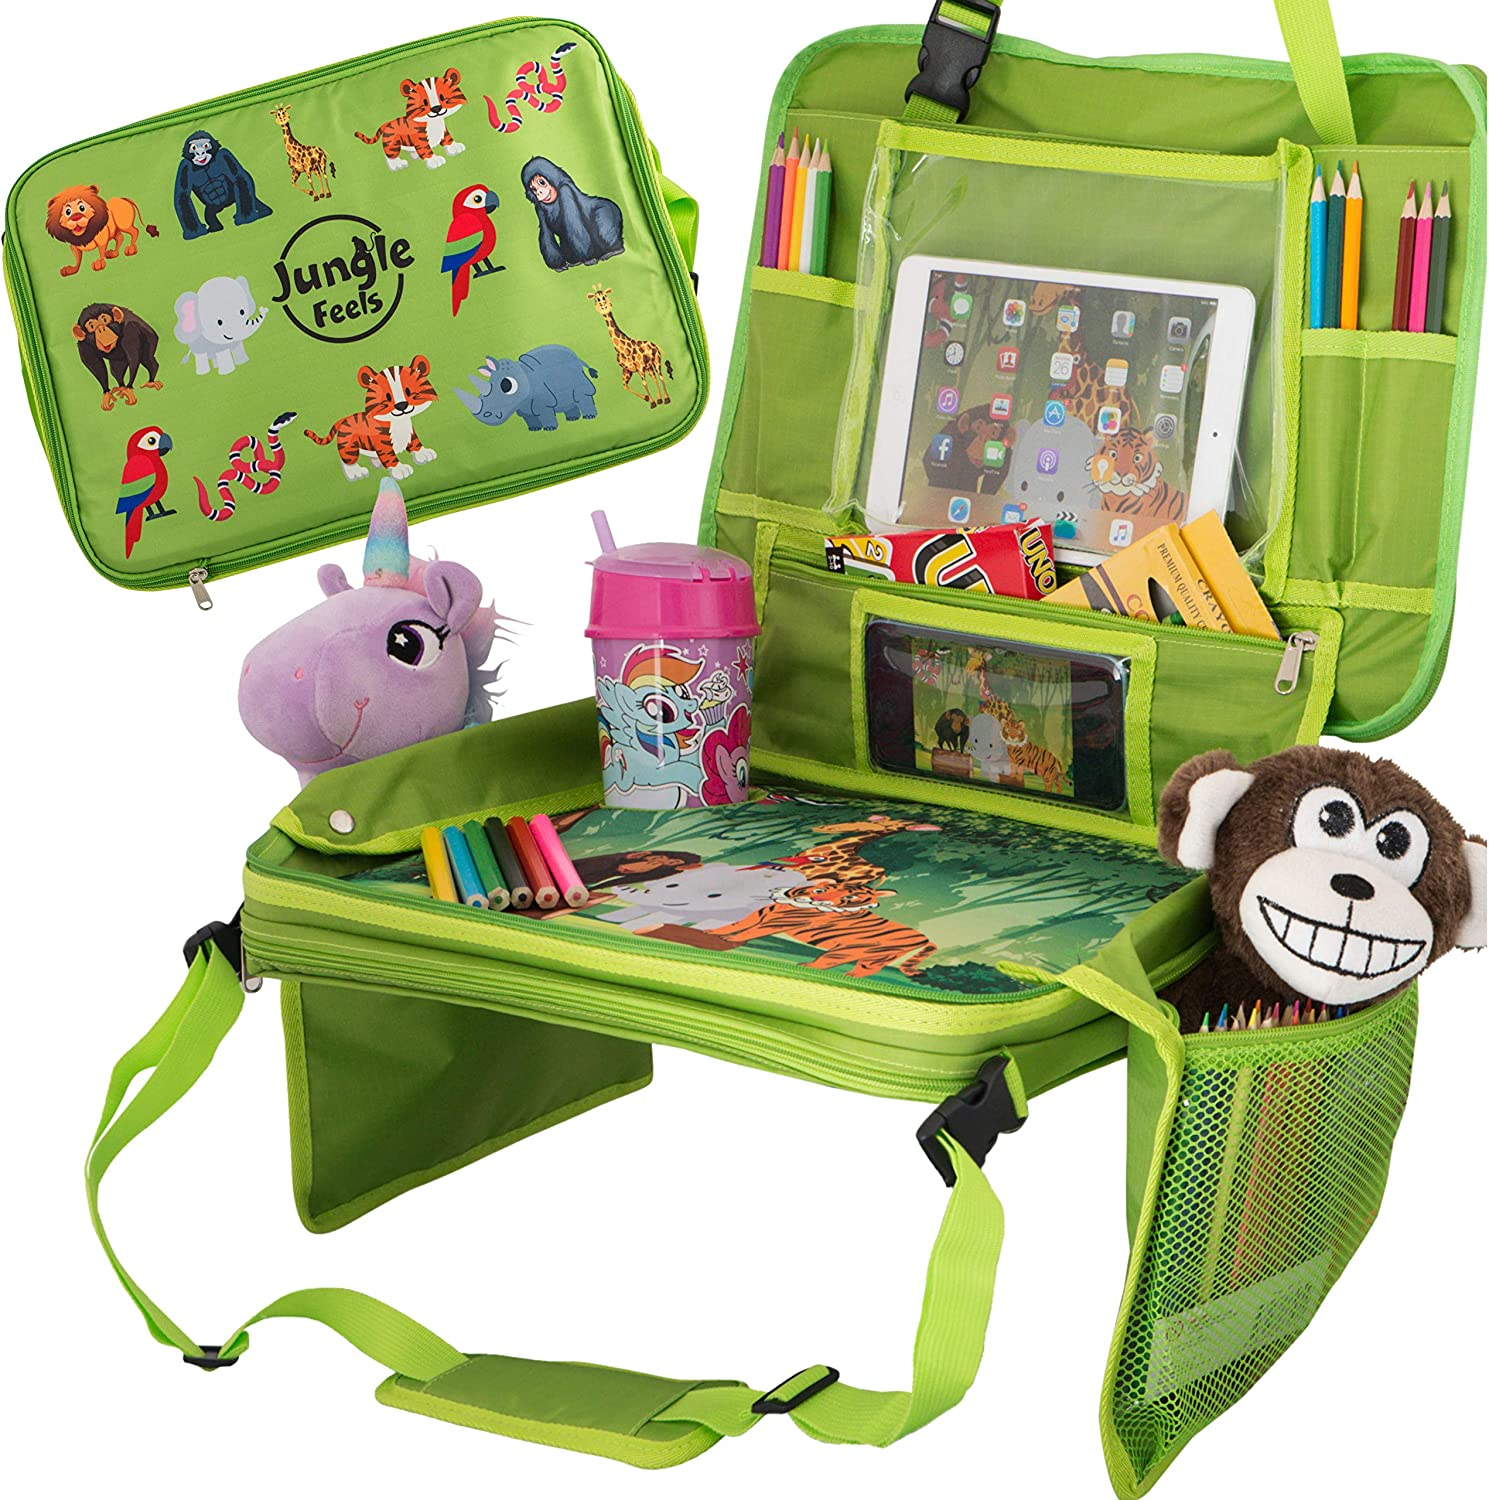 Car Seat Table for Toddler Travel & Kids Travel Tray &, Travel Accessories & Organizer for Kids, Car Travel Tray & Activity Tray for Kids, BONUS Coloring Book & 12 Crayons for Kids Car Activities